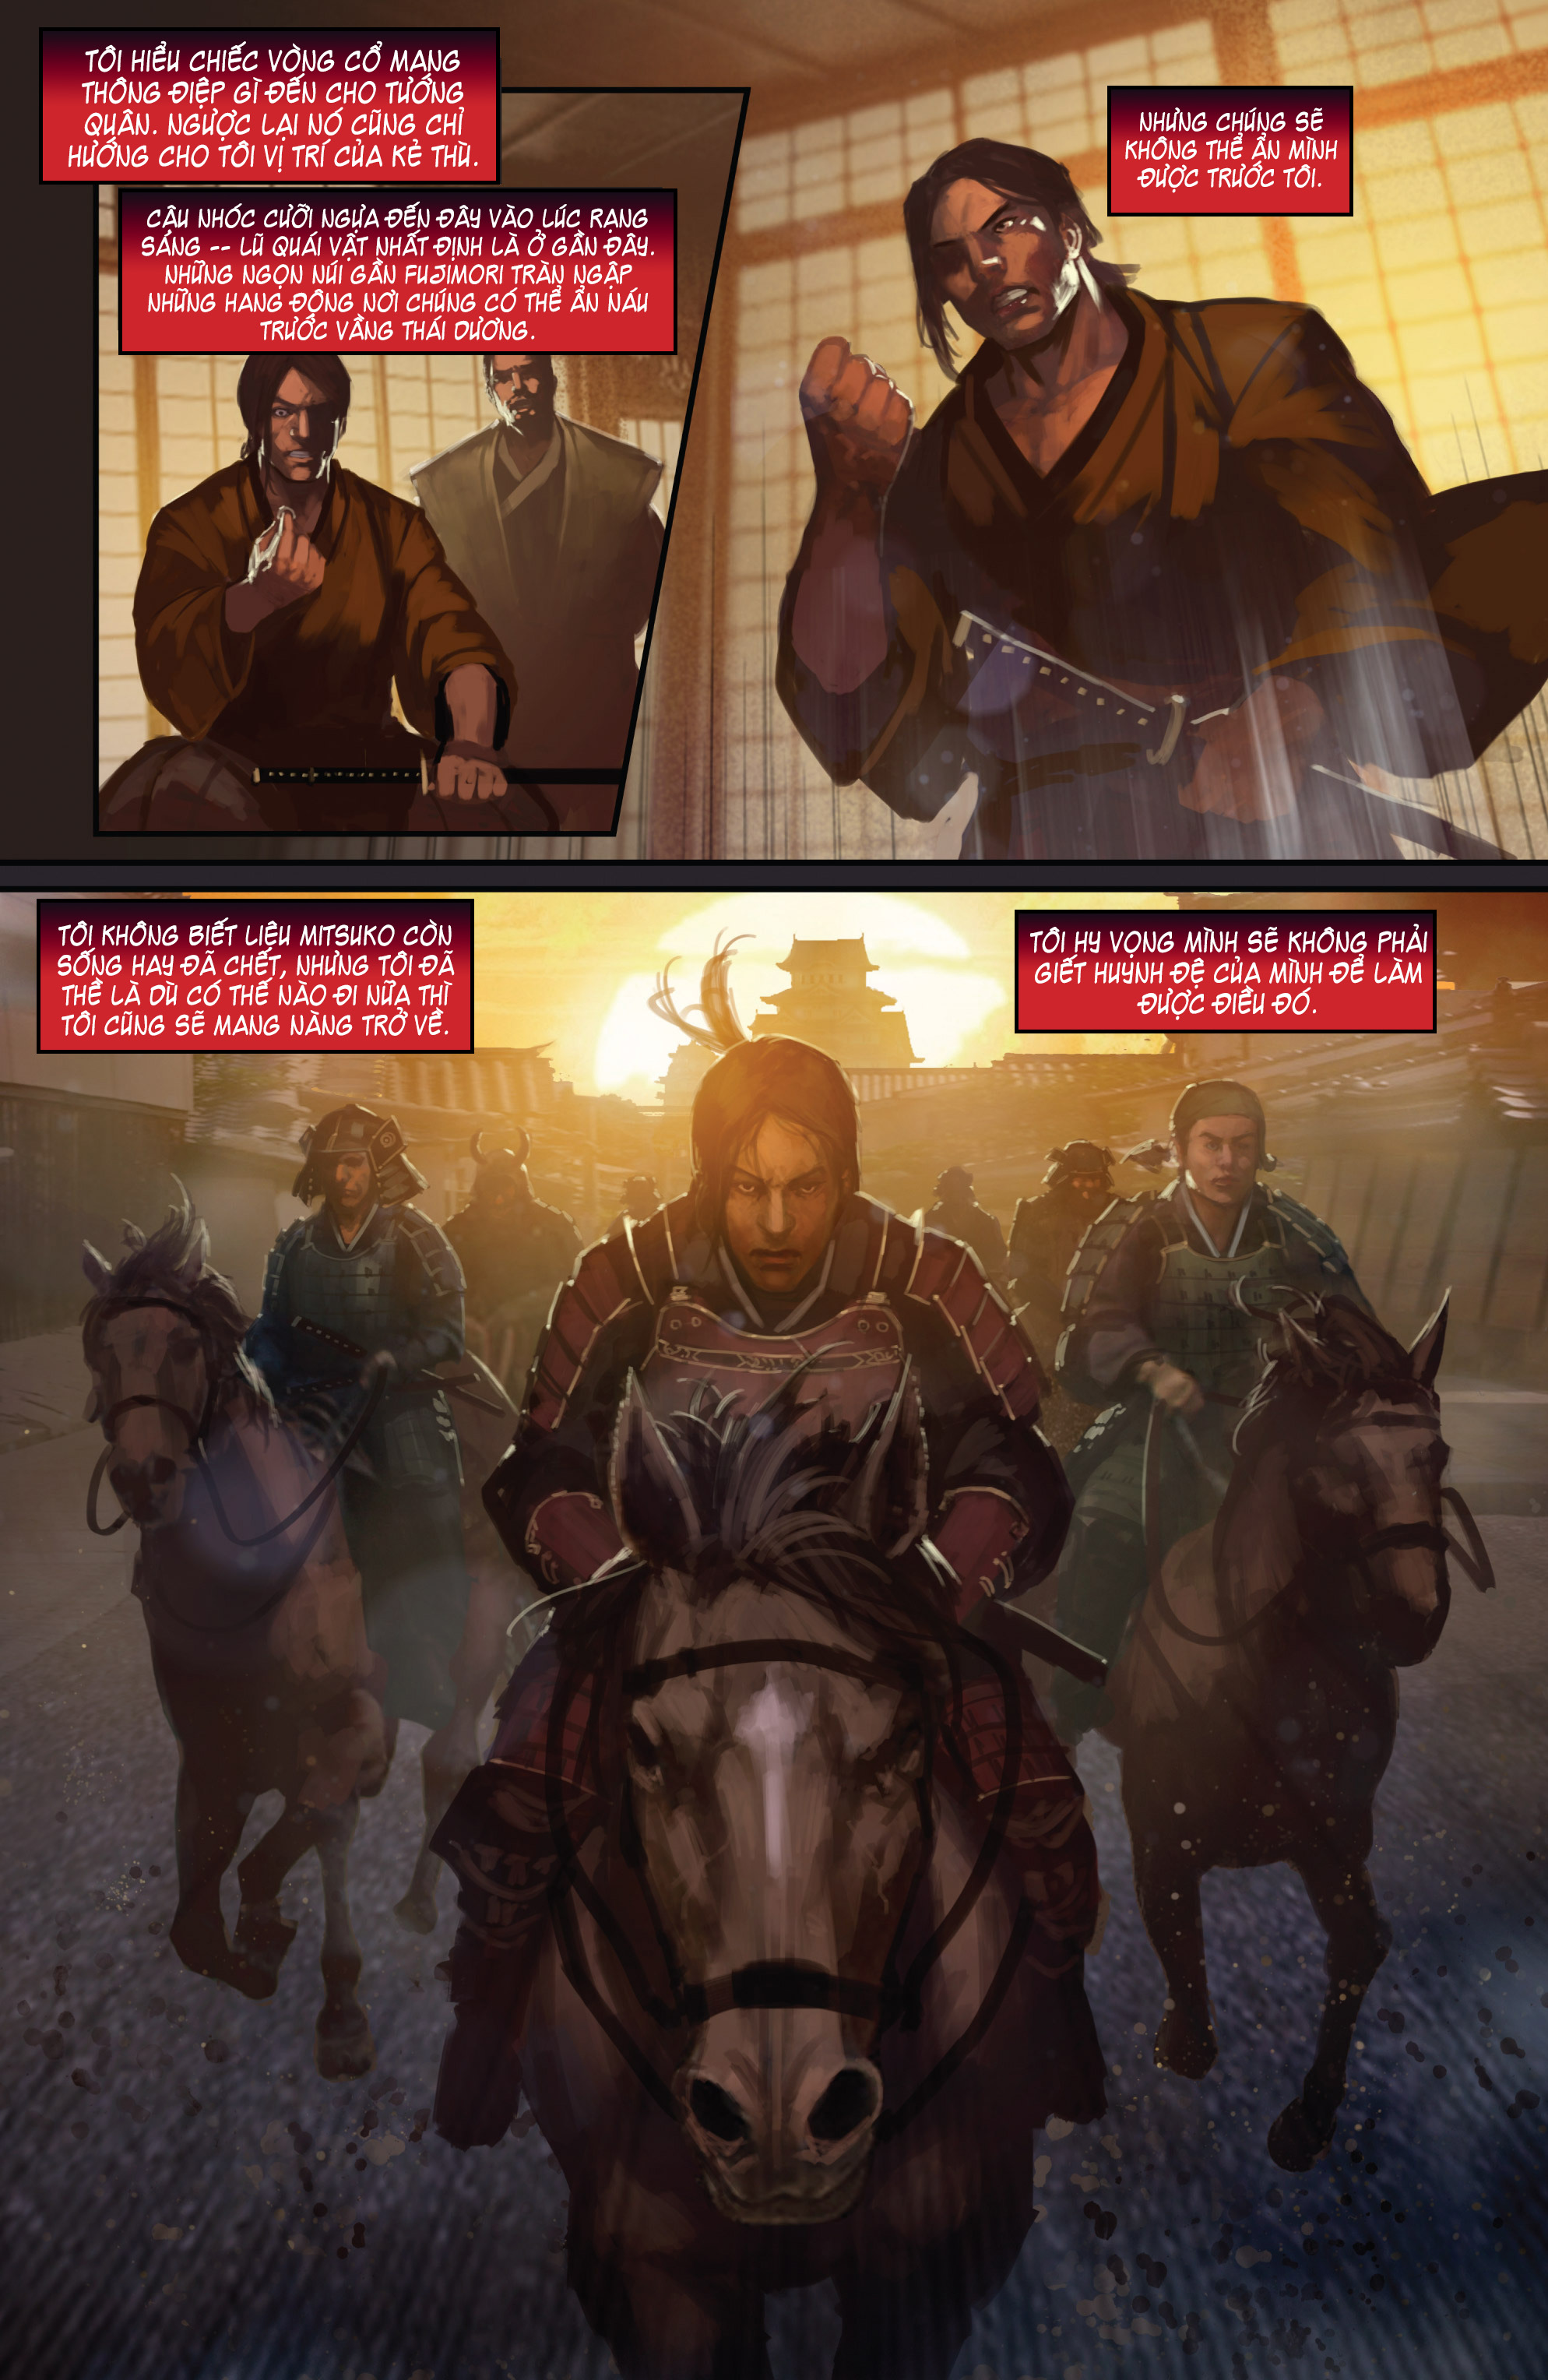 BUSHIDO - THE WAY OF THE WARRIOR chapter 4 trang 16